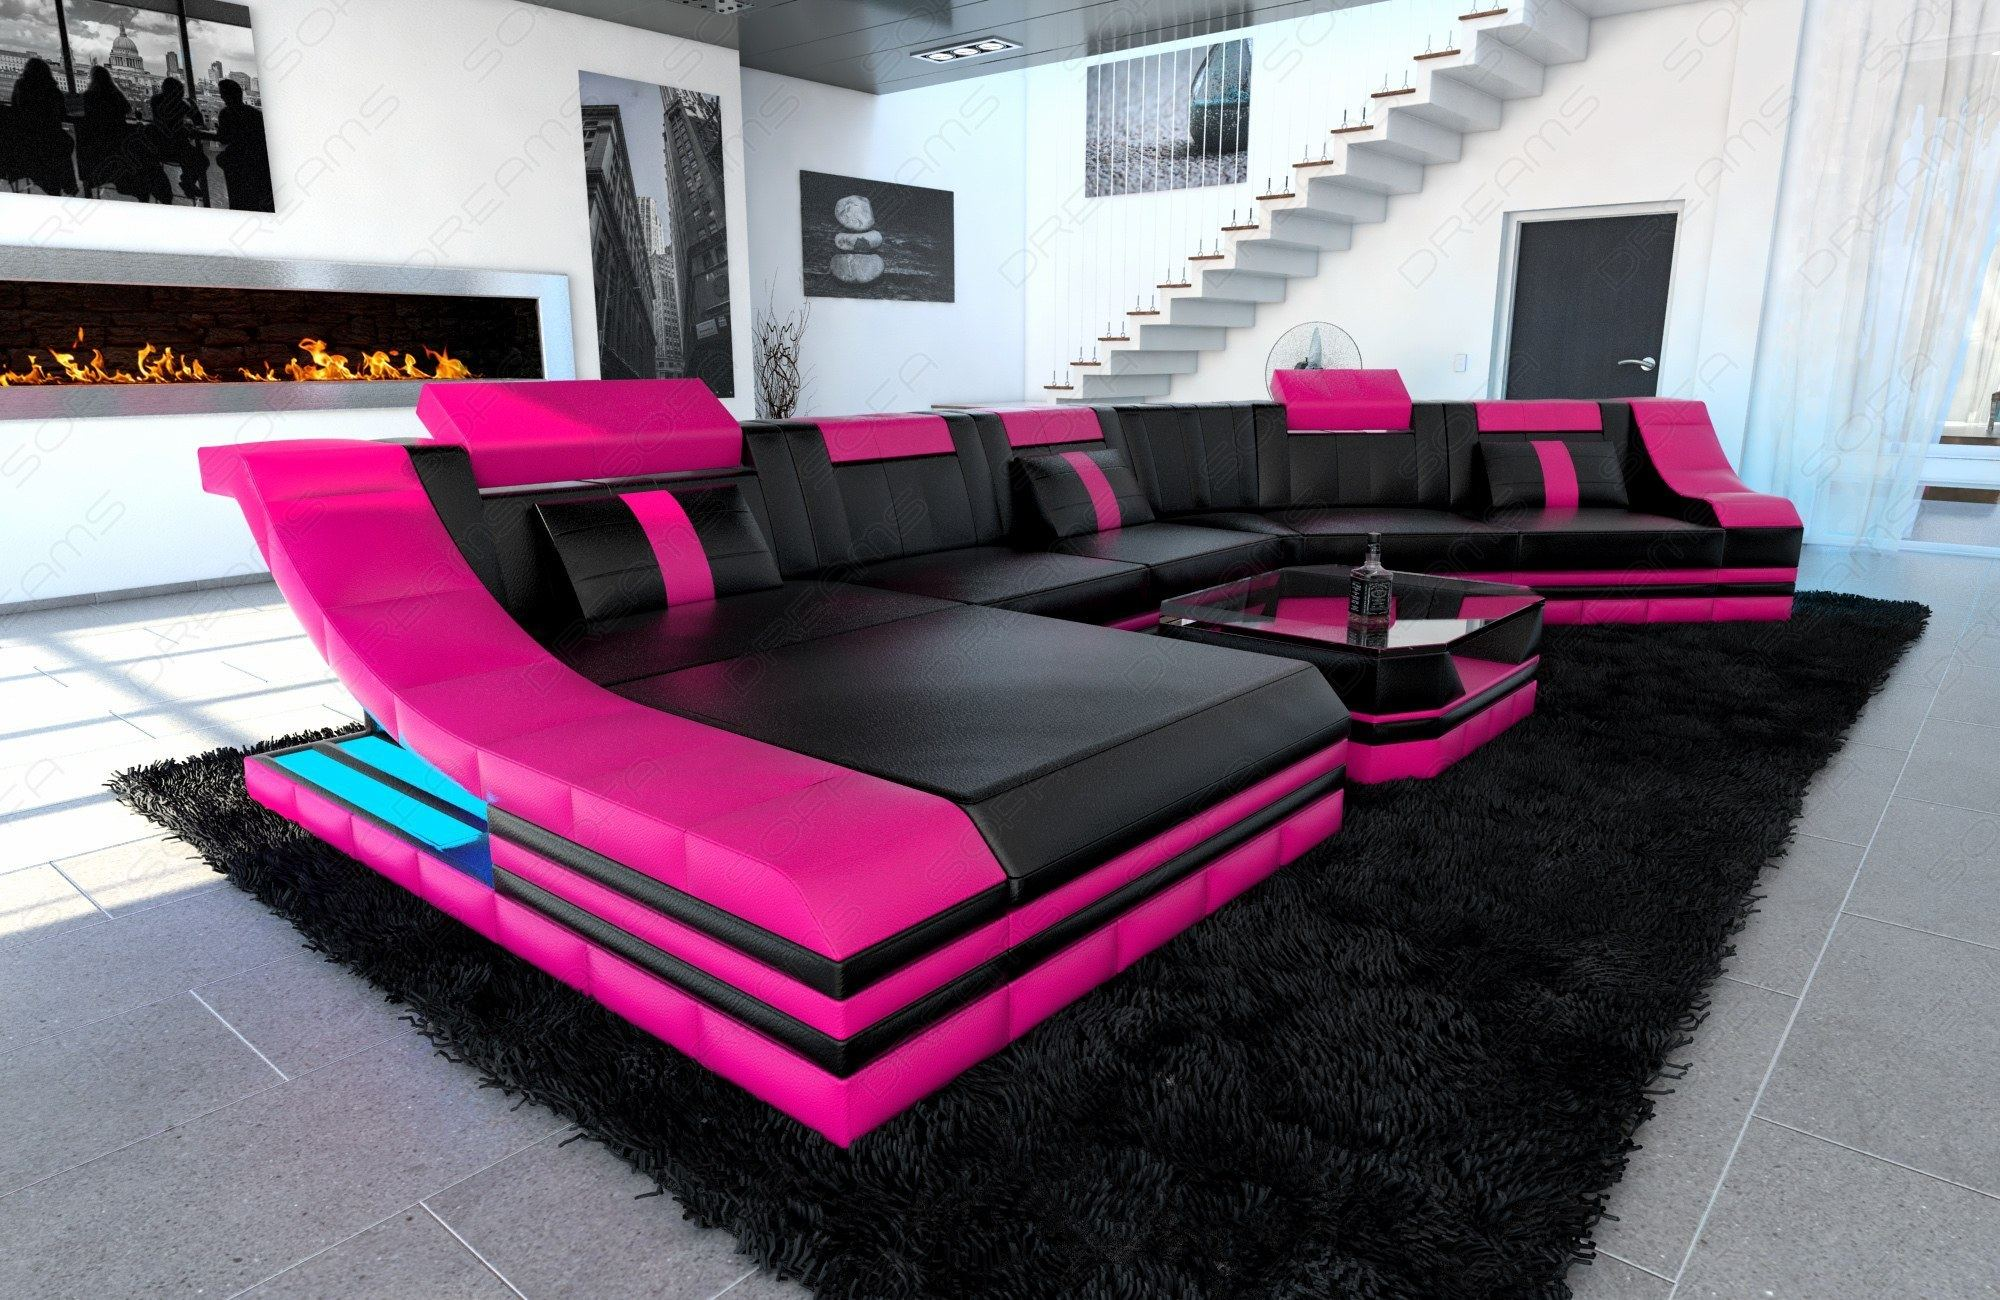 Xxl Luxury Sectional Sofa Turino Cl With Led Lights Black Pink Ebay